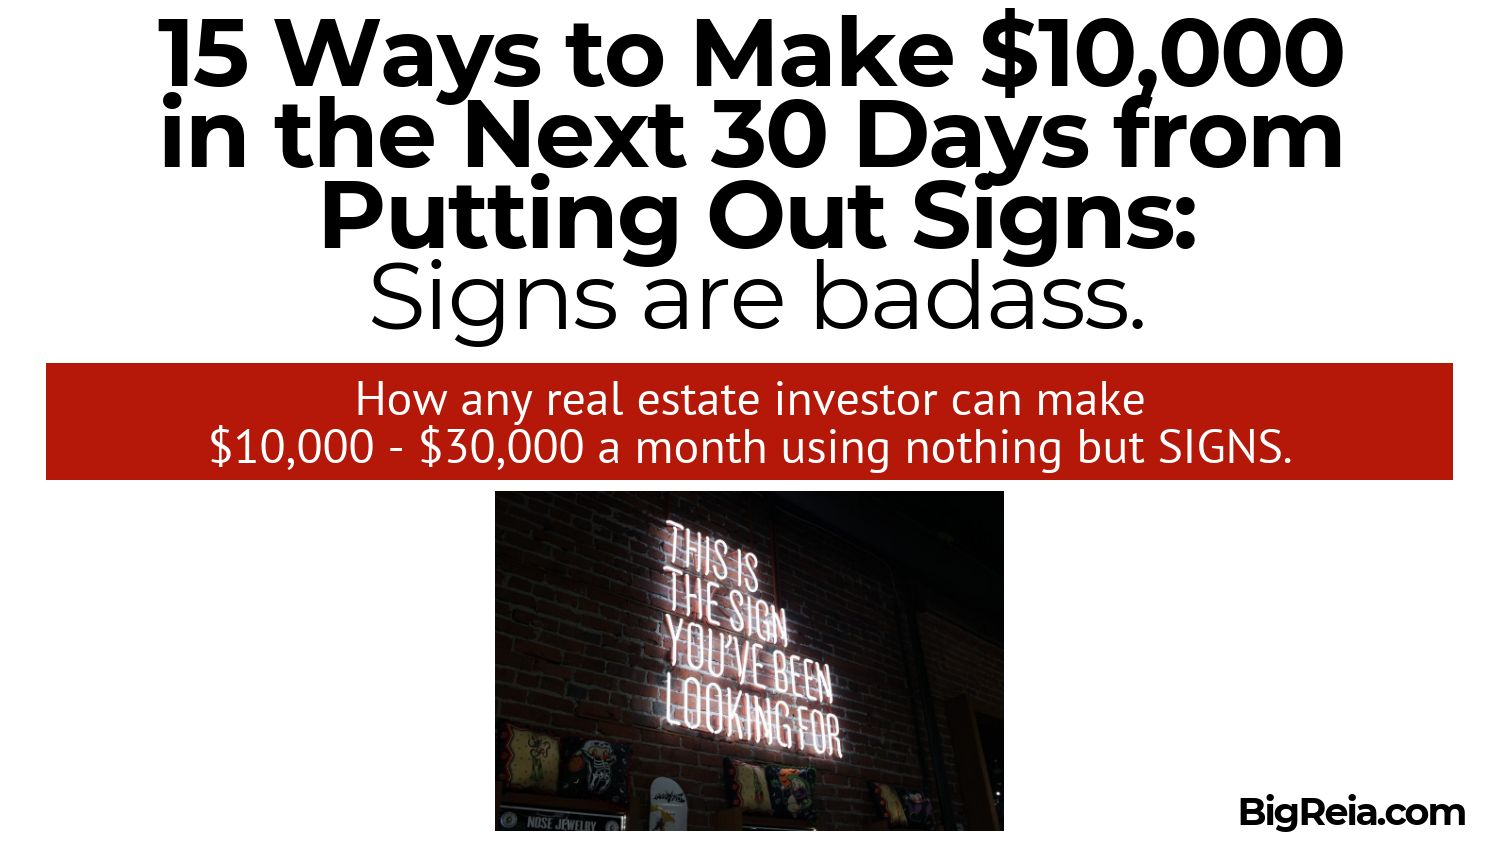 19 ways to use signs to make 10k a month.